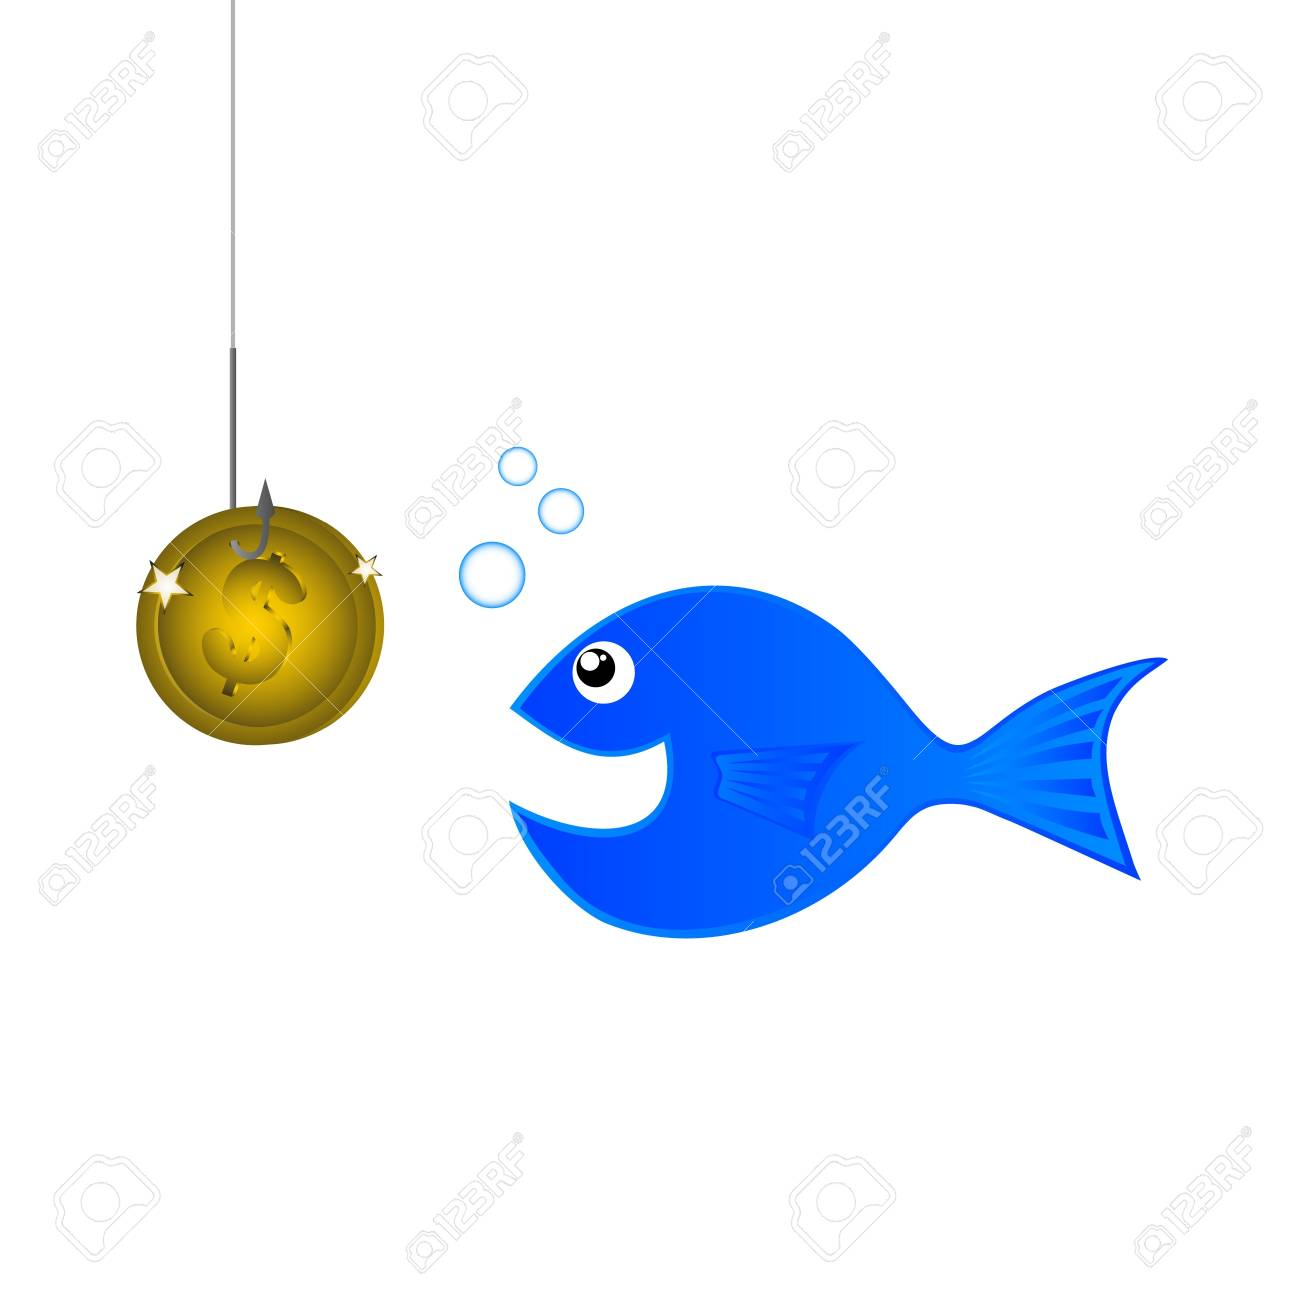 Trying to fish using a gold coin Stock Vector - 9425231